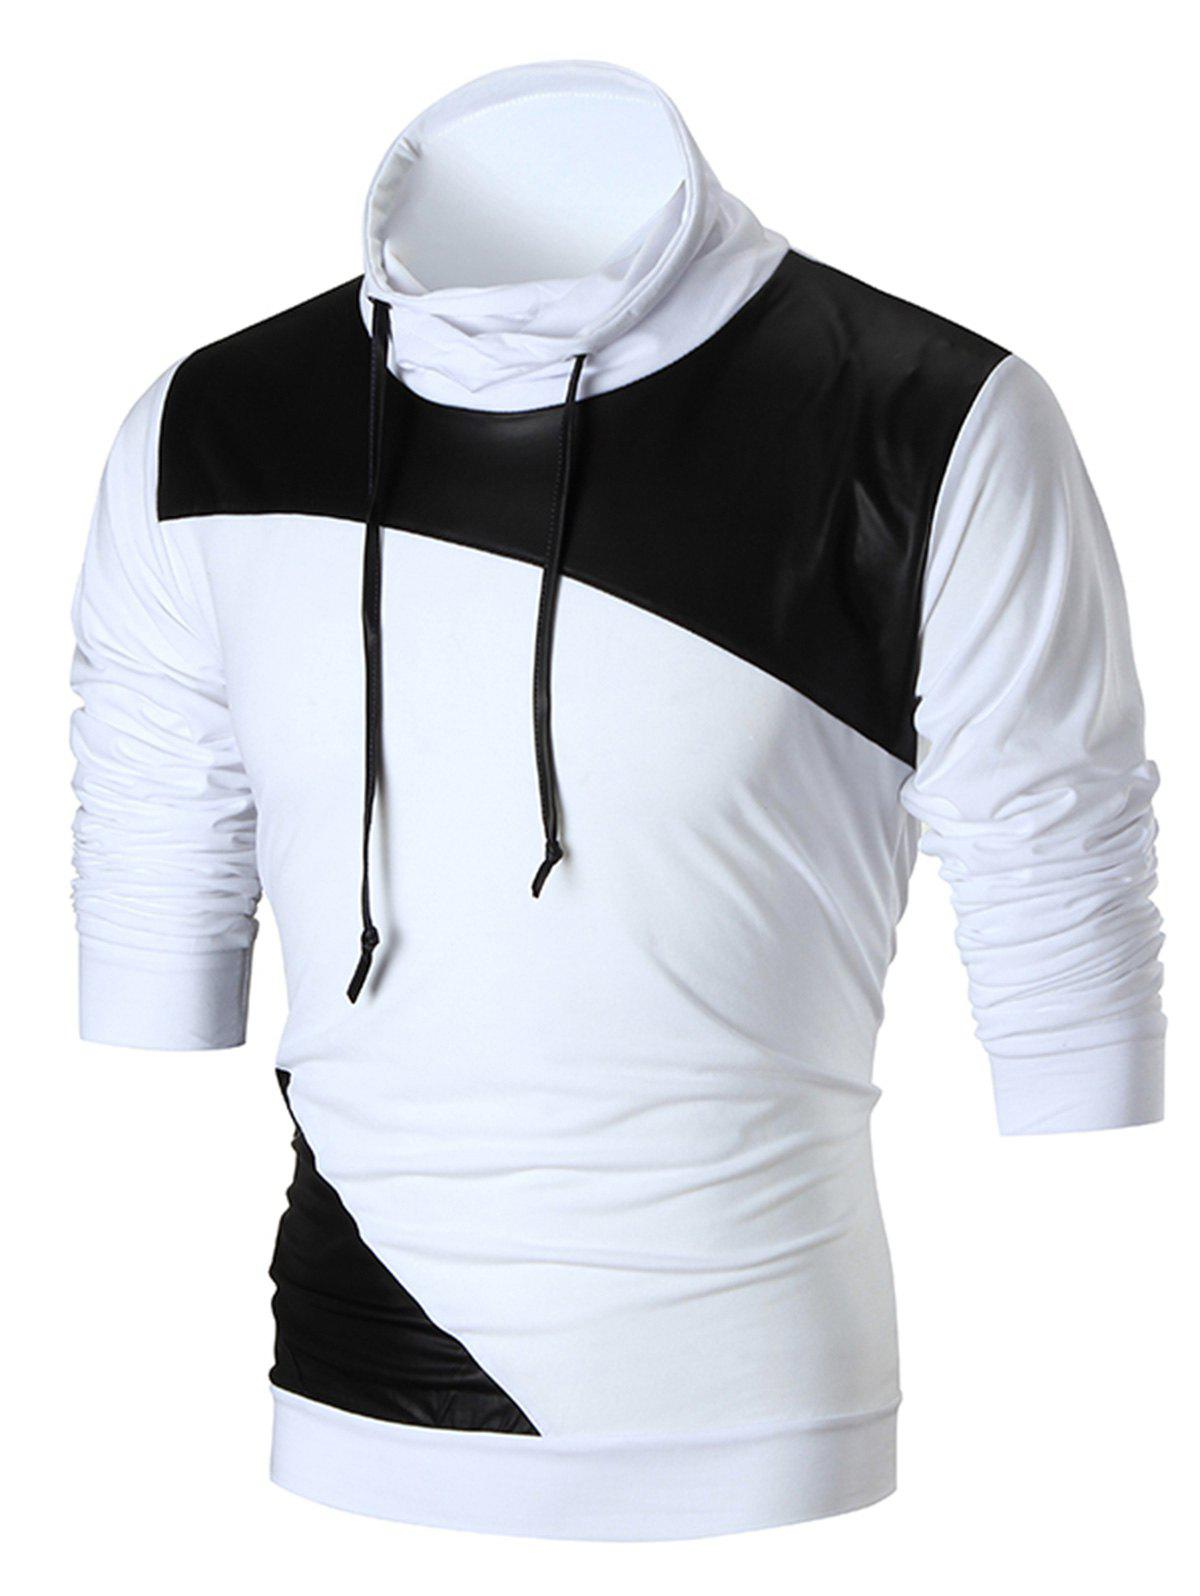 Faux Leather Panel Stretch Pullover SweatshirtMEN<br><br>Size: L; Color: WHITE; Material: Cotton,Polyester,Spandex; Clothes Type: Sweatshirt; Shirt Length: Regular; Sleeve Length: Full; Style: Fashion; Patterns: Color Block; Thickness: Thin; Occasion: Casual ,Club,Daily Use,Going Out,Sports; Weight: 0.3100kg; Package Contents: 1 x Sweatshirt;